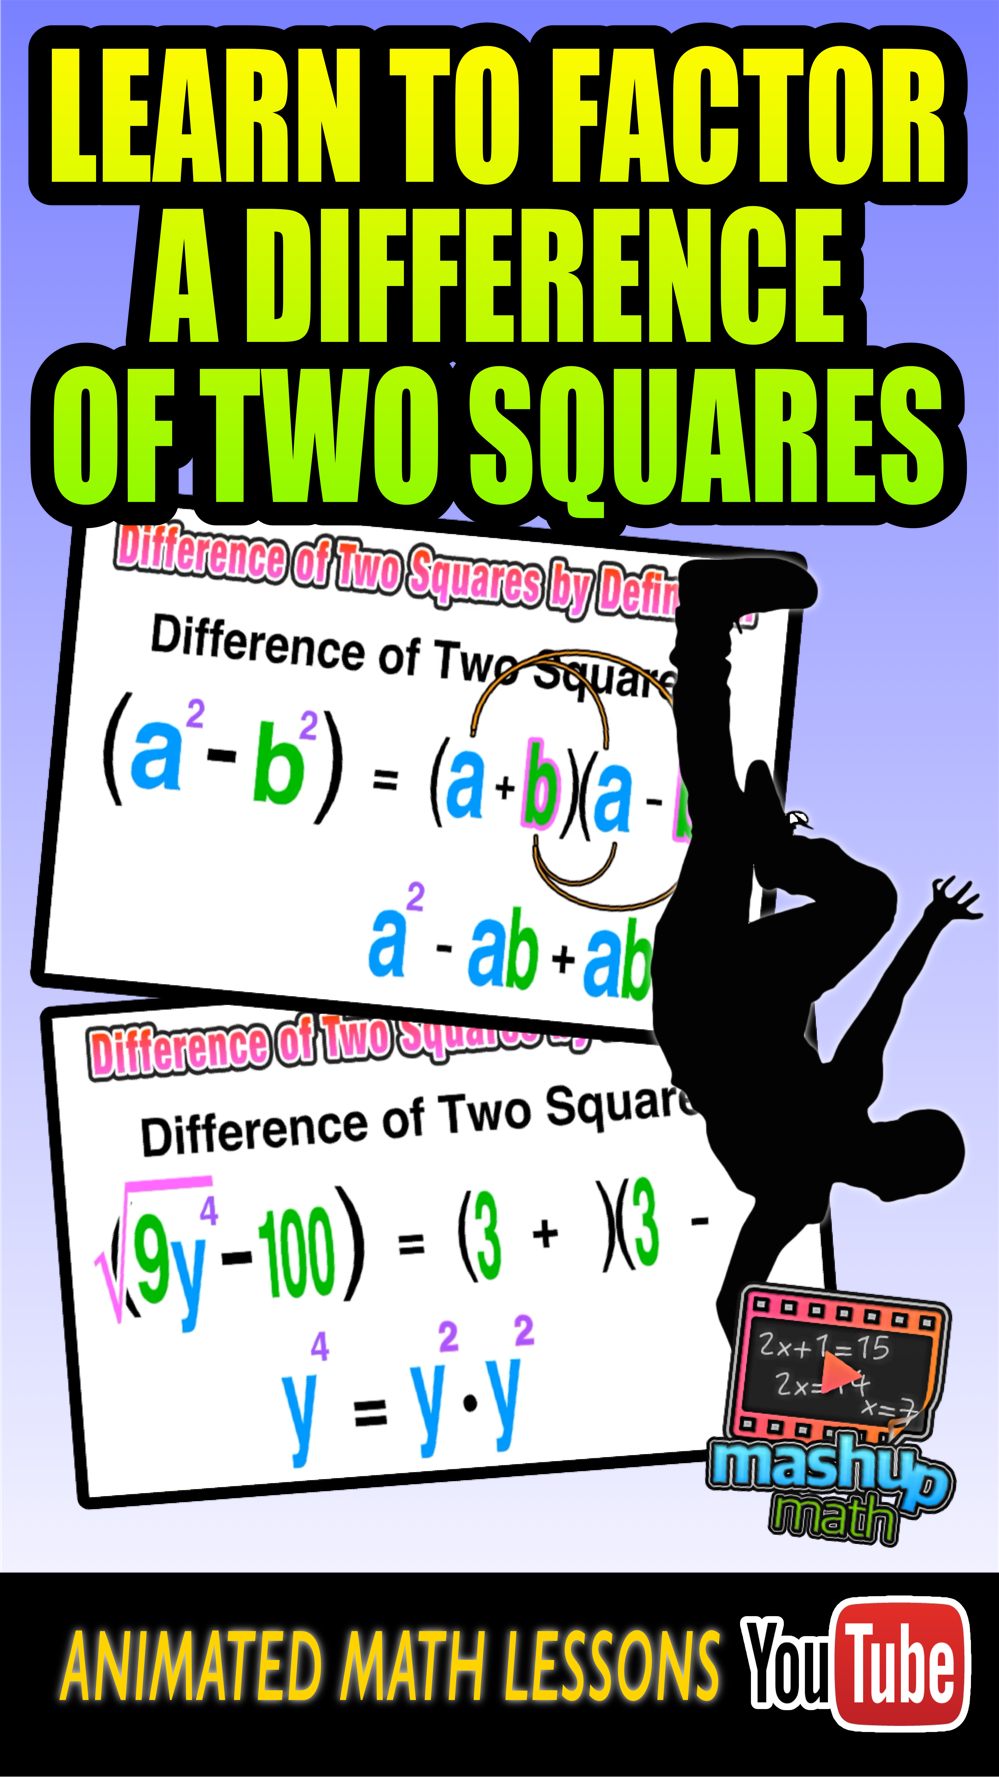 Check Out Our Animated Algebra Lesson On Factoring A